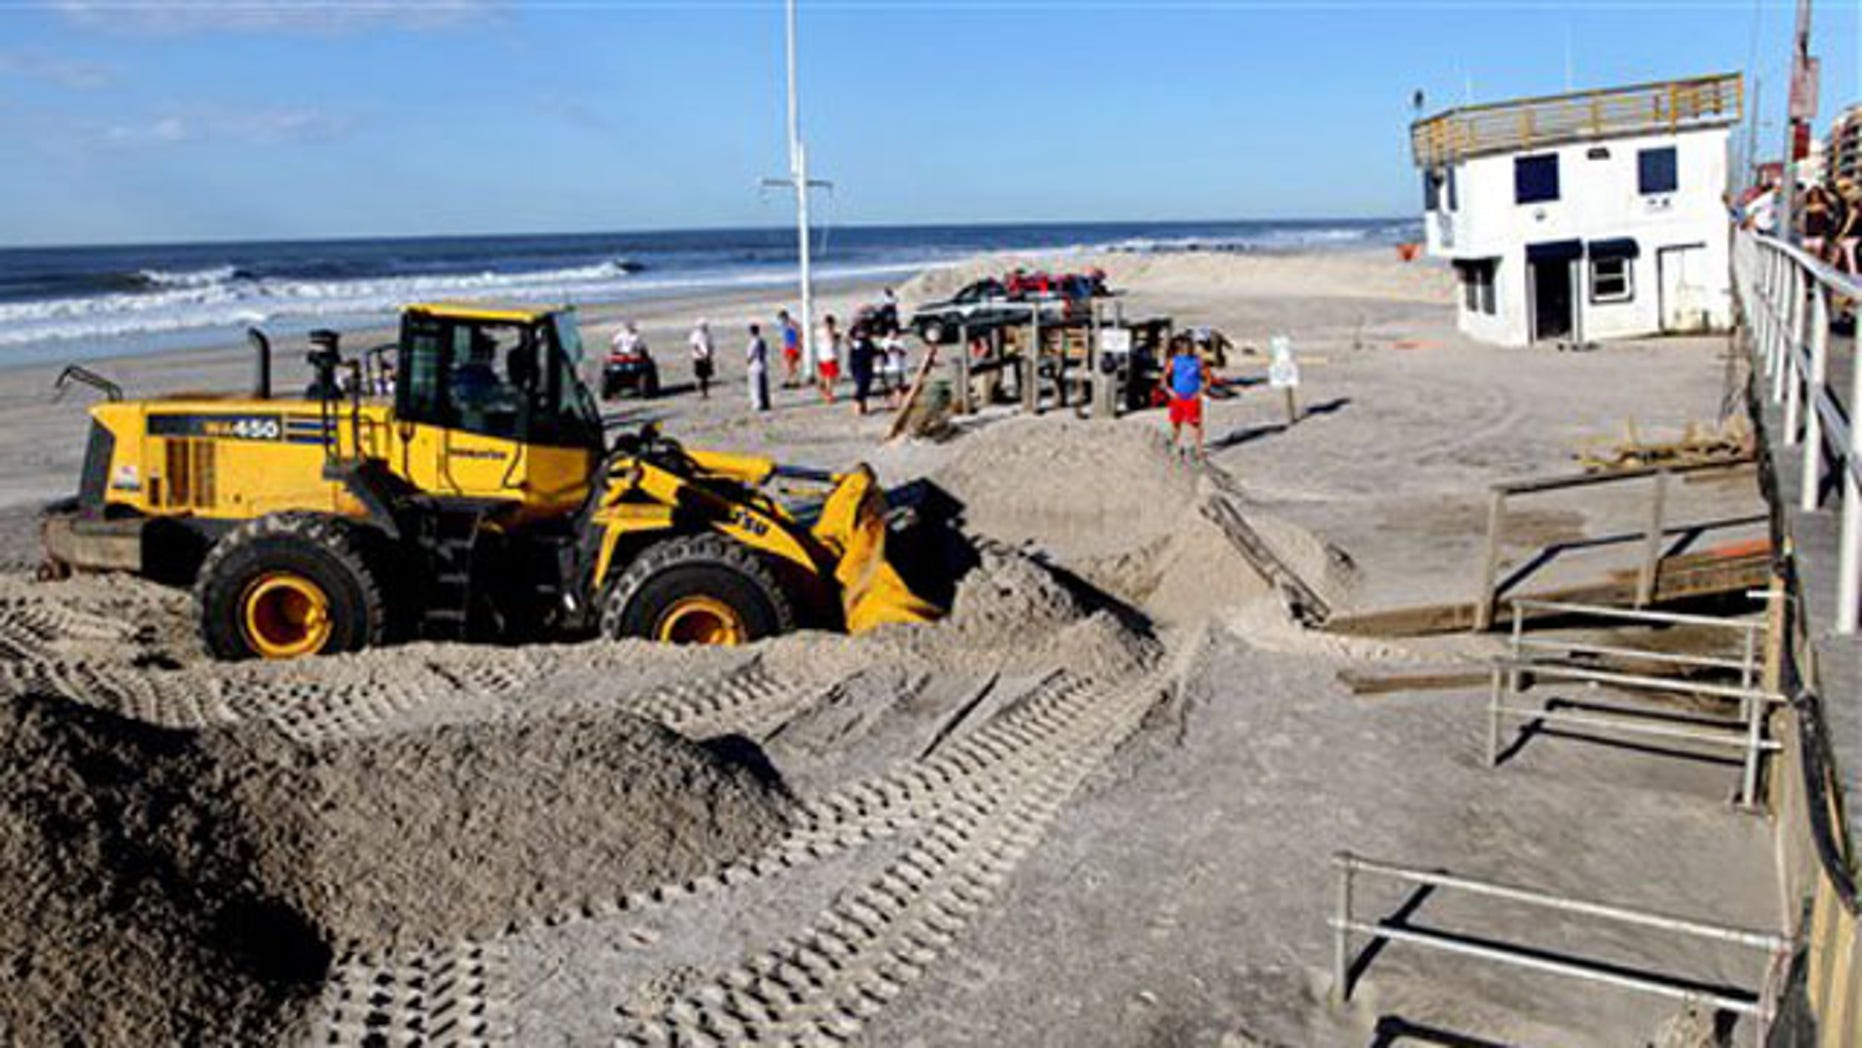 Cleanup continues near a dislodged lifeguard shack, now against the boardwalk in Long Beach, N.Y. Monday, Aug. 29, 2011, after it was knocked off its footing on the beach during Tropical Storm Irene Sunday in Long Beach, N.Y. (AP Photo/Craig Ruttle)